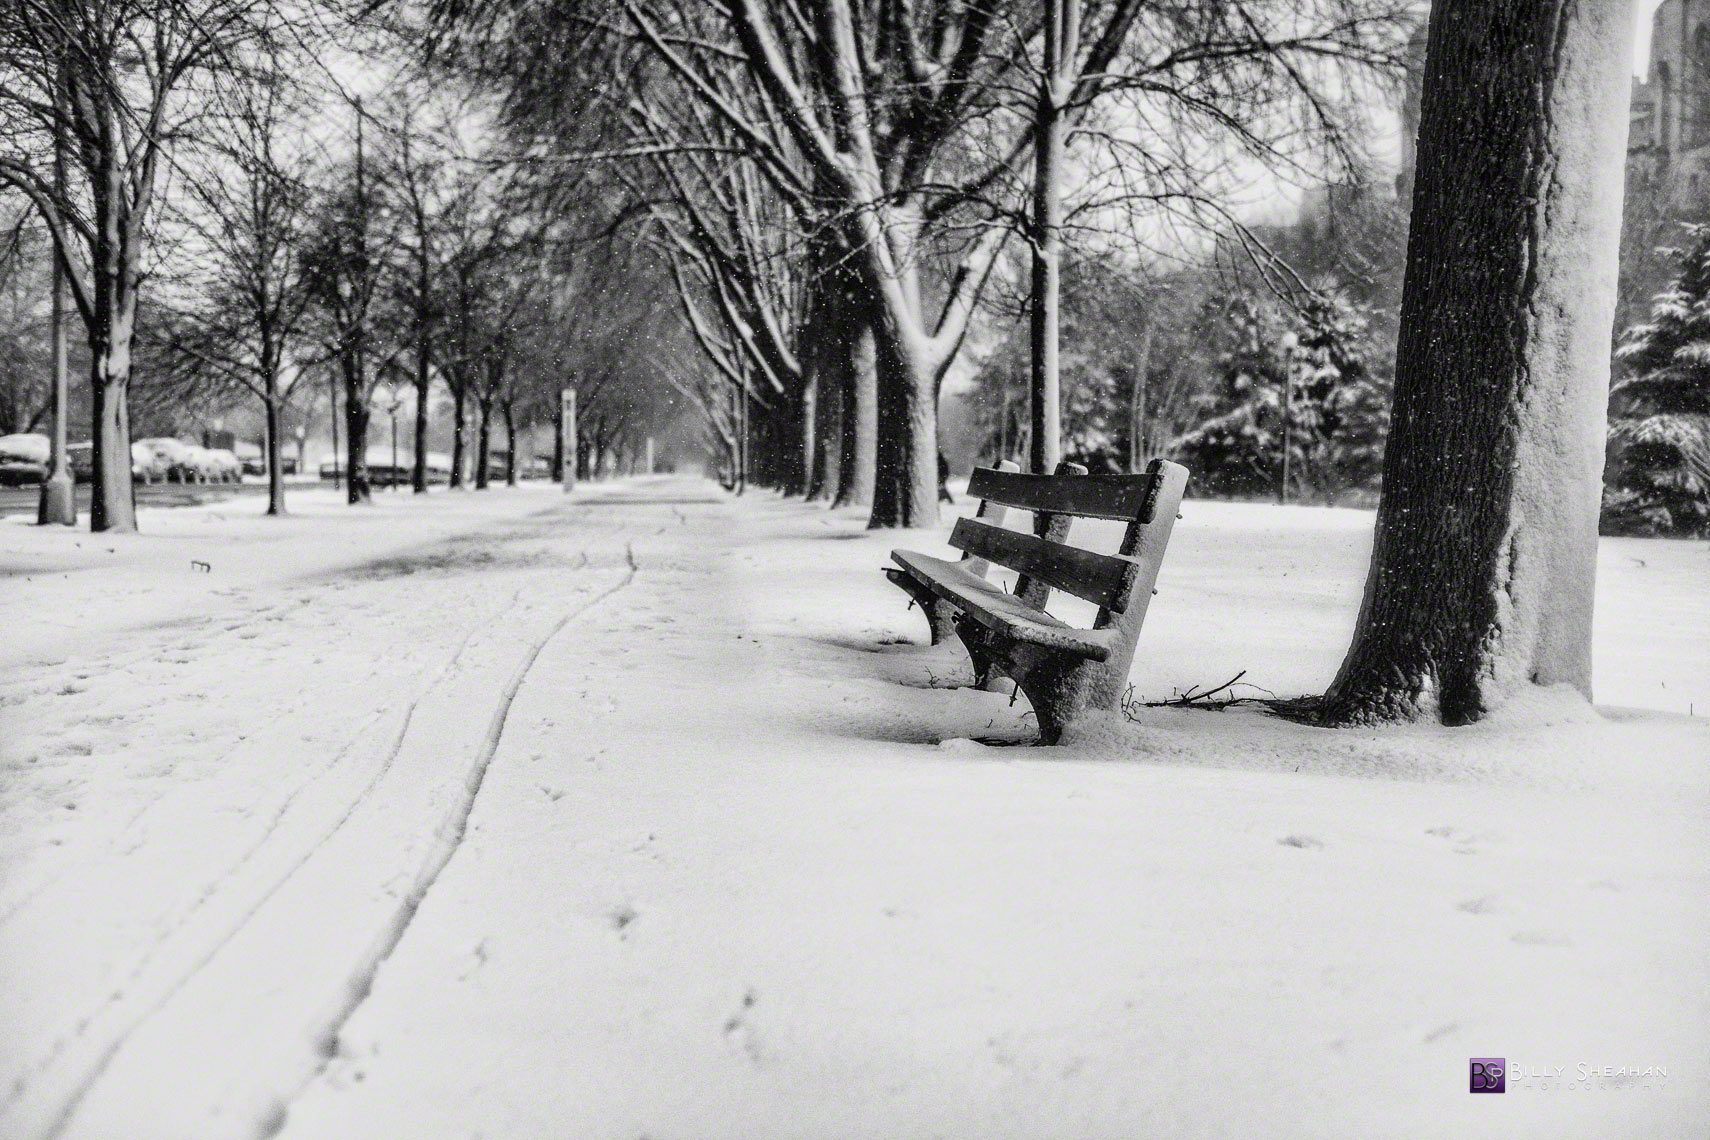 Snowy Path and Bench